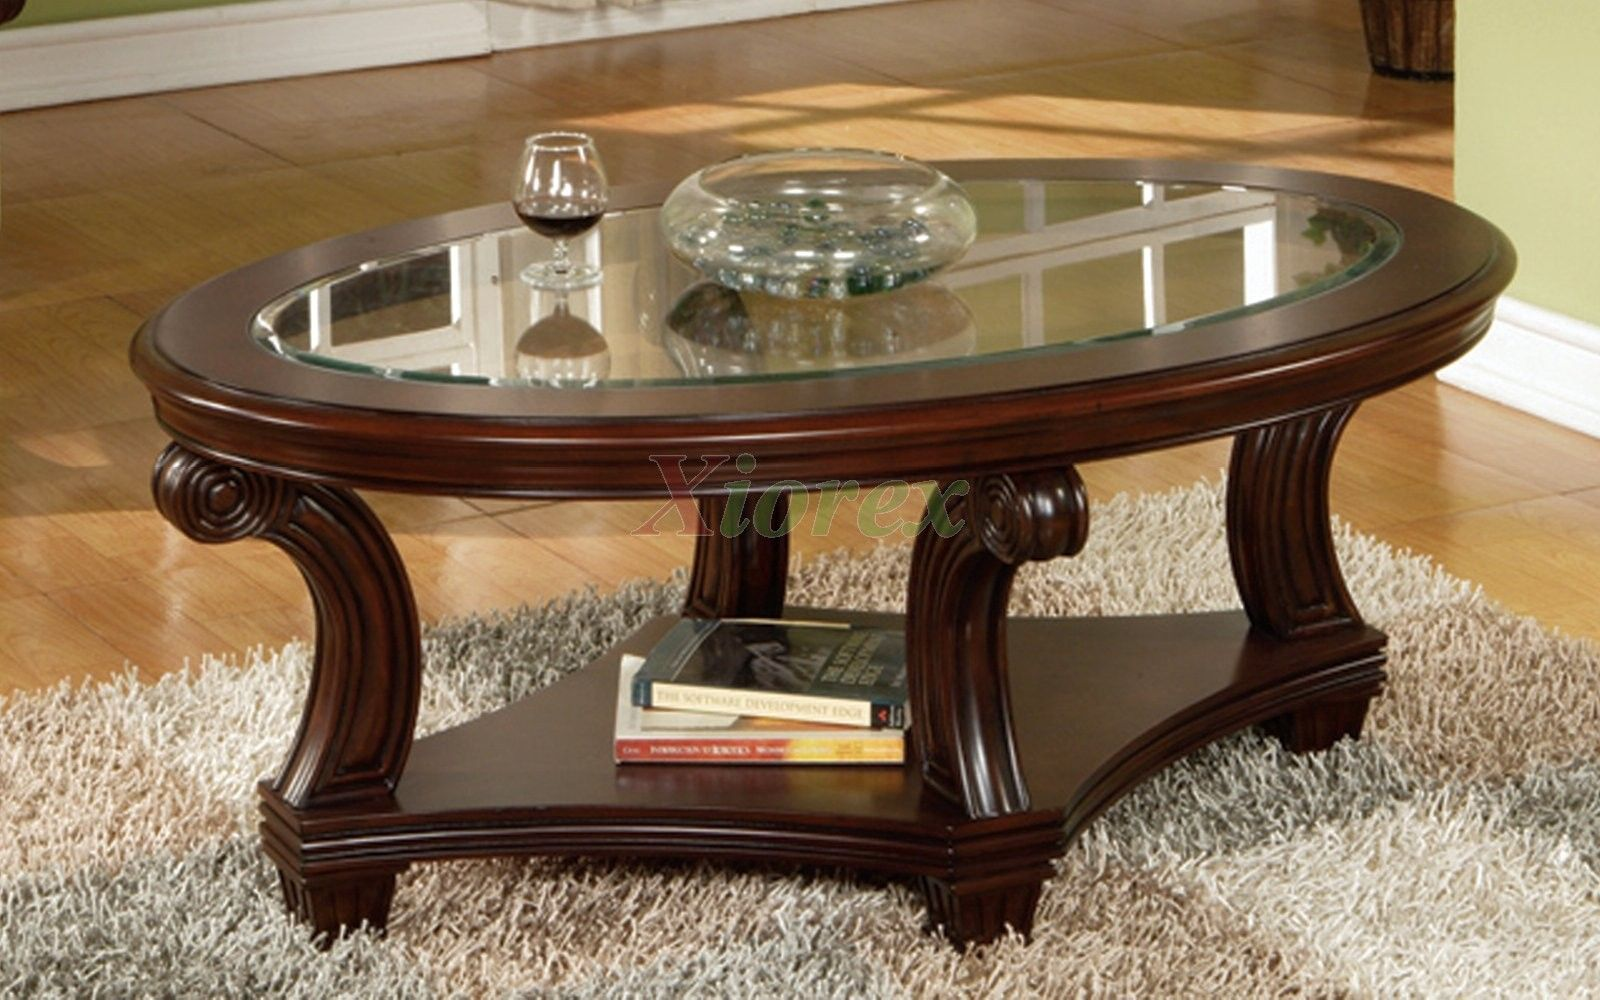 Evafurniture Com Is For Sale Large Square Coffee Table Coffee Table Coffee Table Square